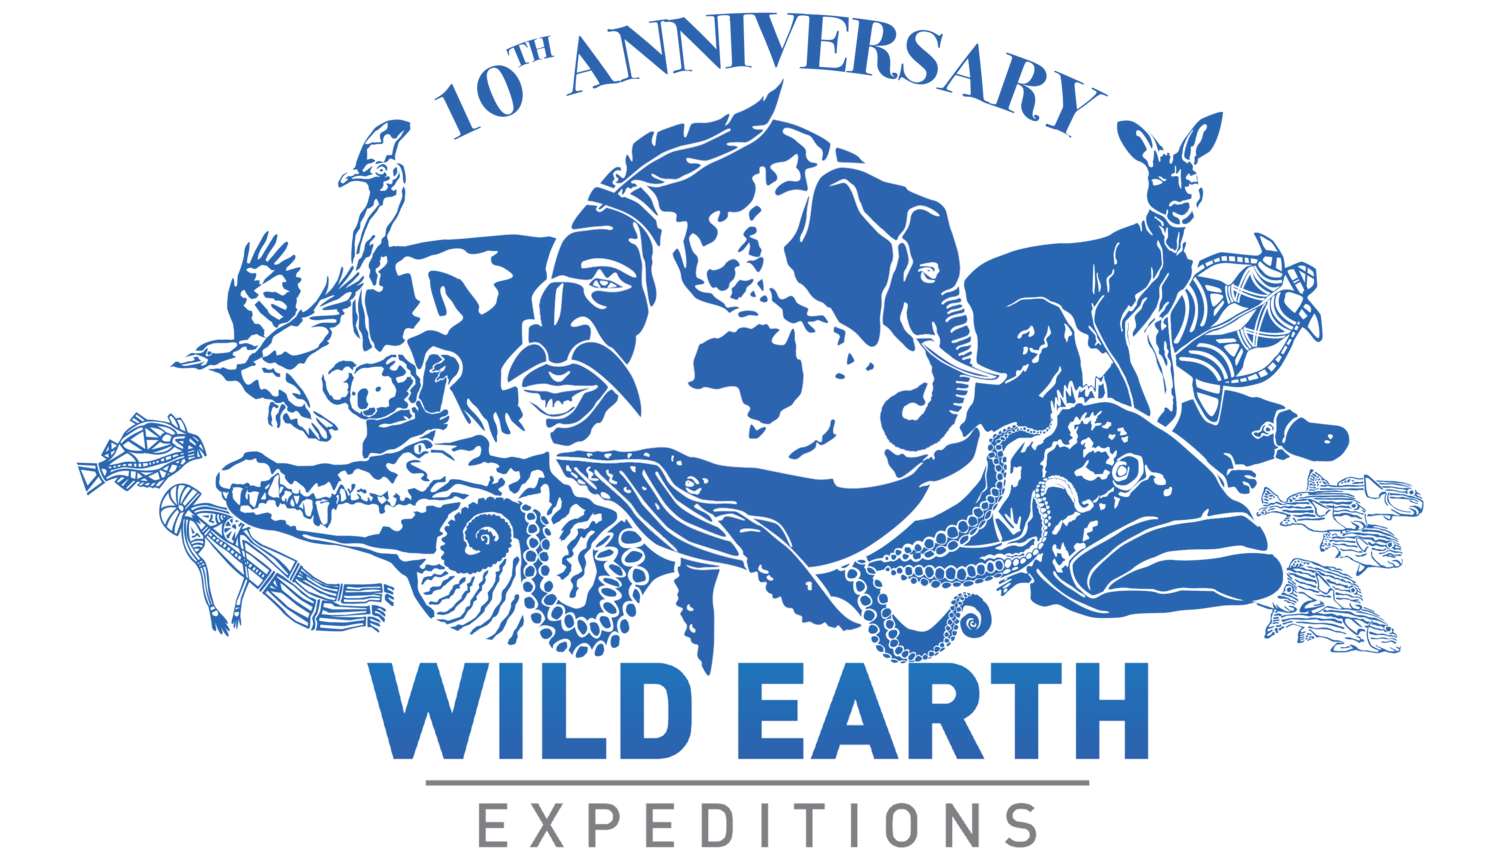 Testimonials Wild Earth Expeditions